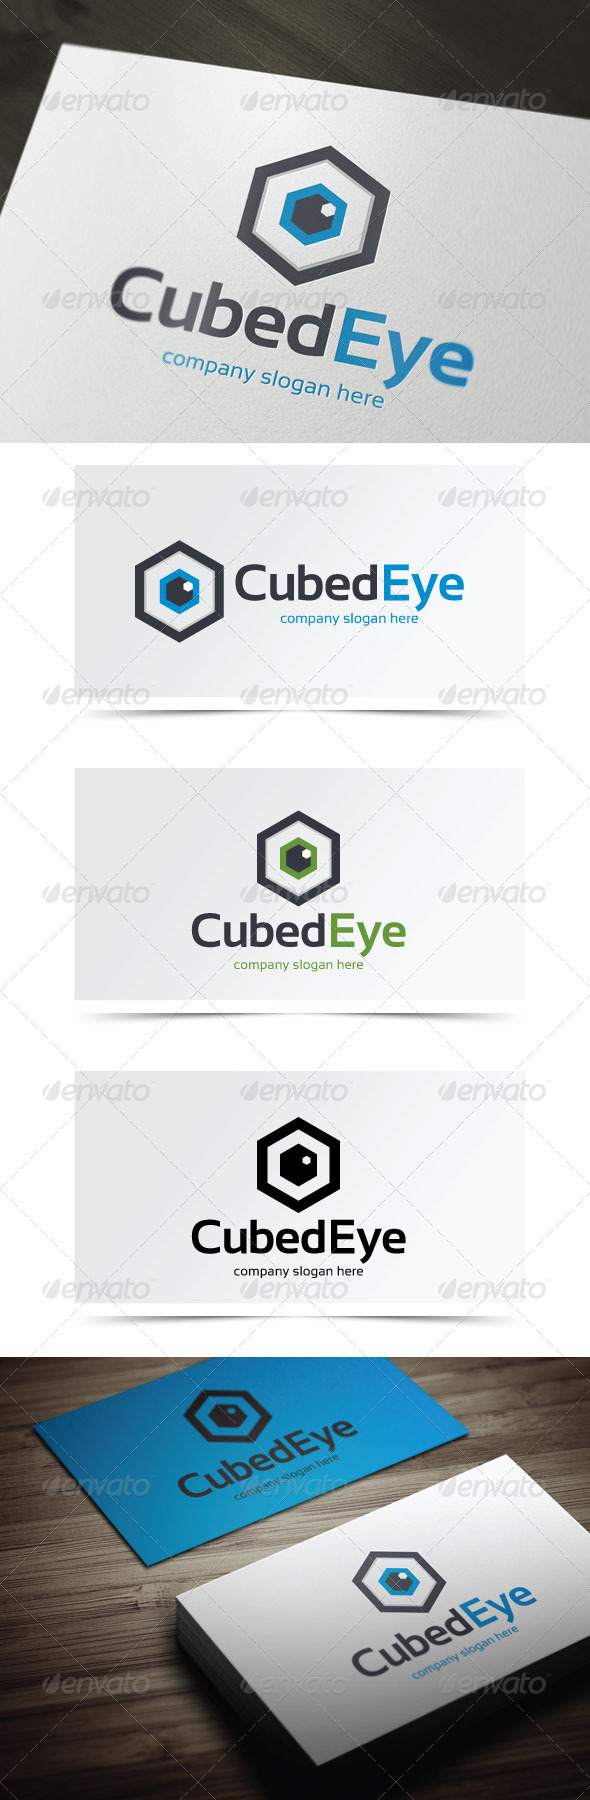 GraphicRiver Cubed Eye 5483520